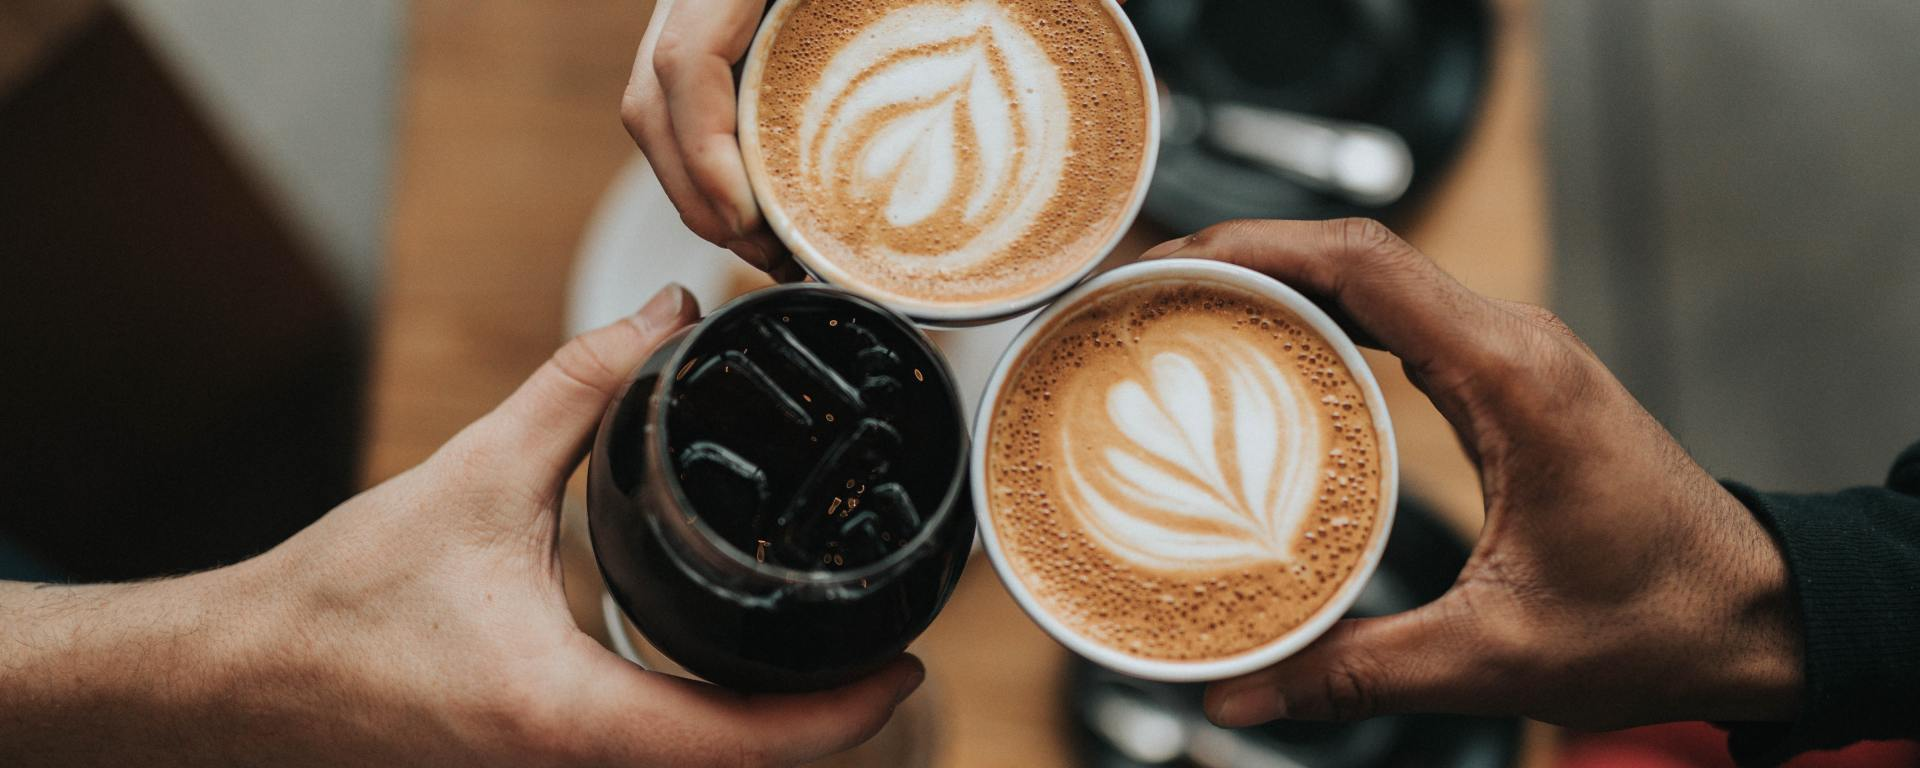 An image of three people holding drinks.